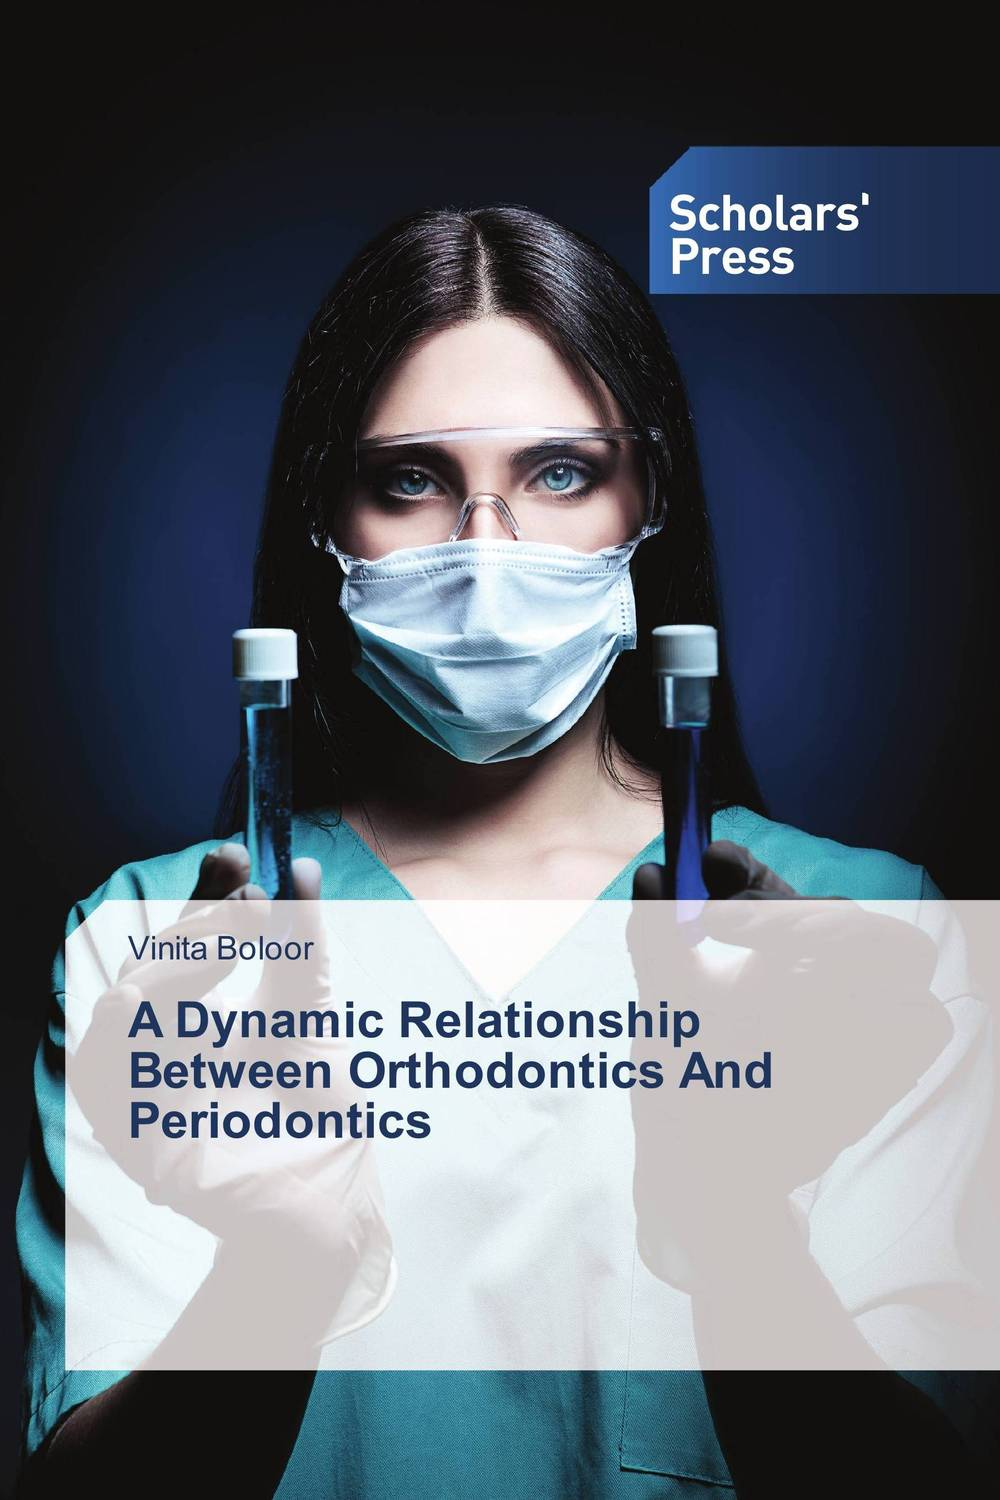 A Dynamic Relationship Between Orthodontics And Periodontics occlusion in orthodontics